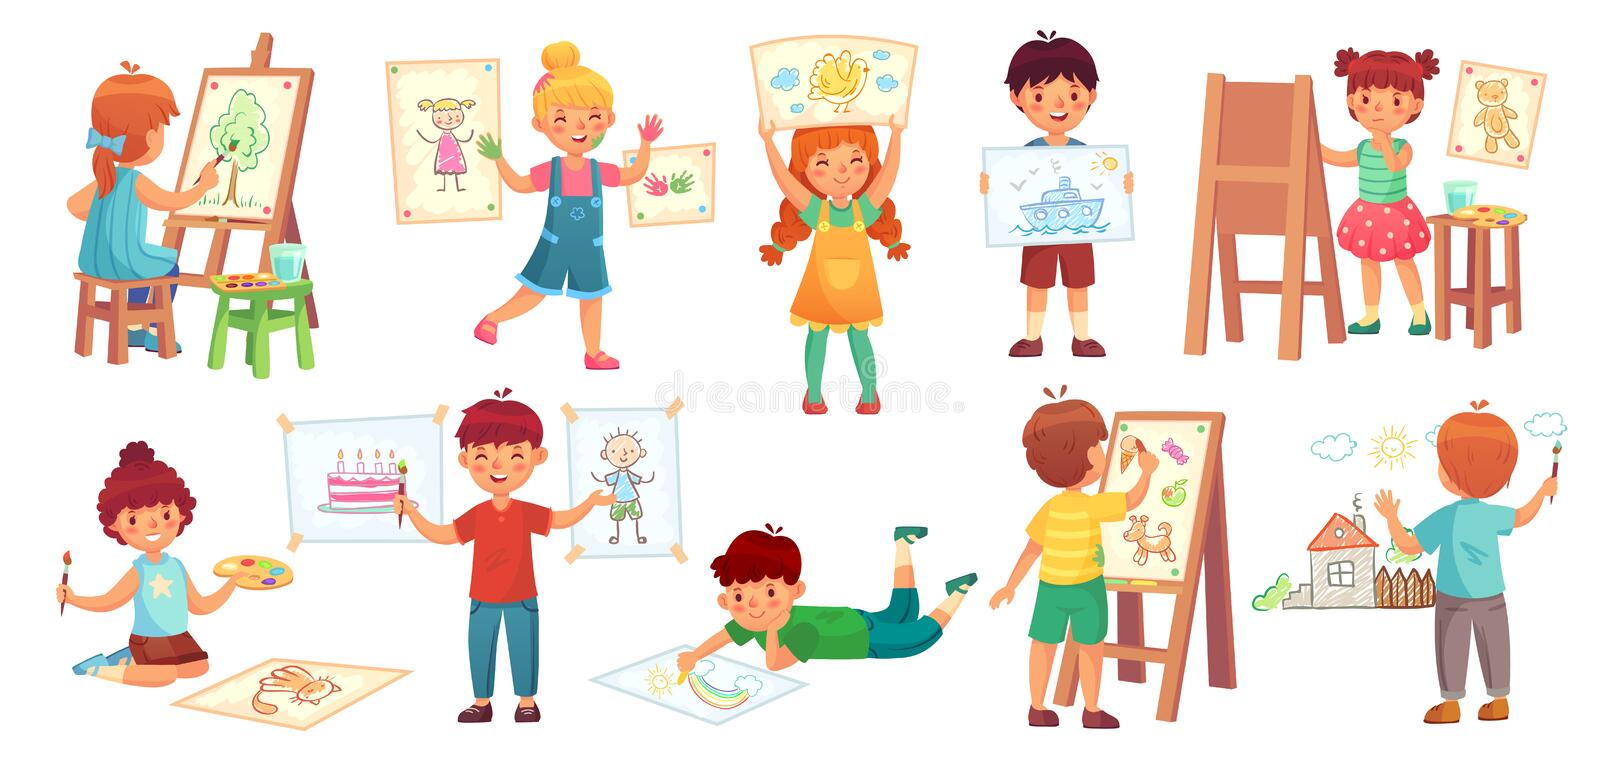 Drawing children. Kid illustrator, baby drawing play and draw kids group cartoon vector illustration stock illustration